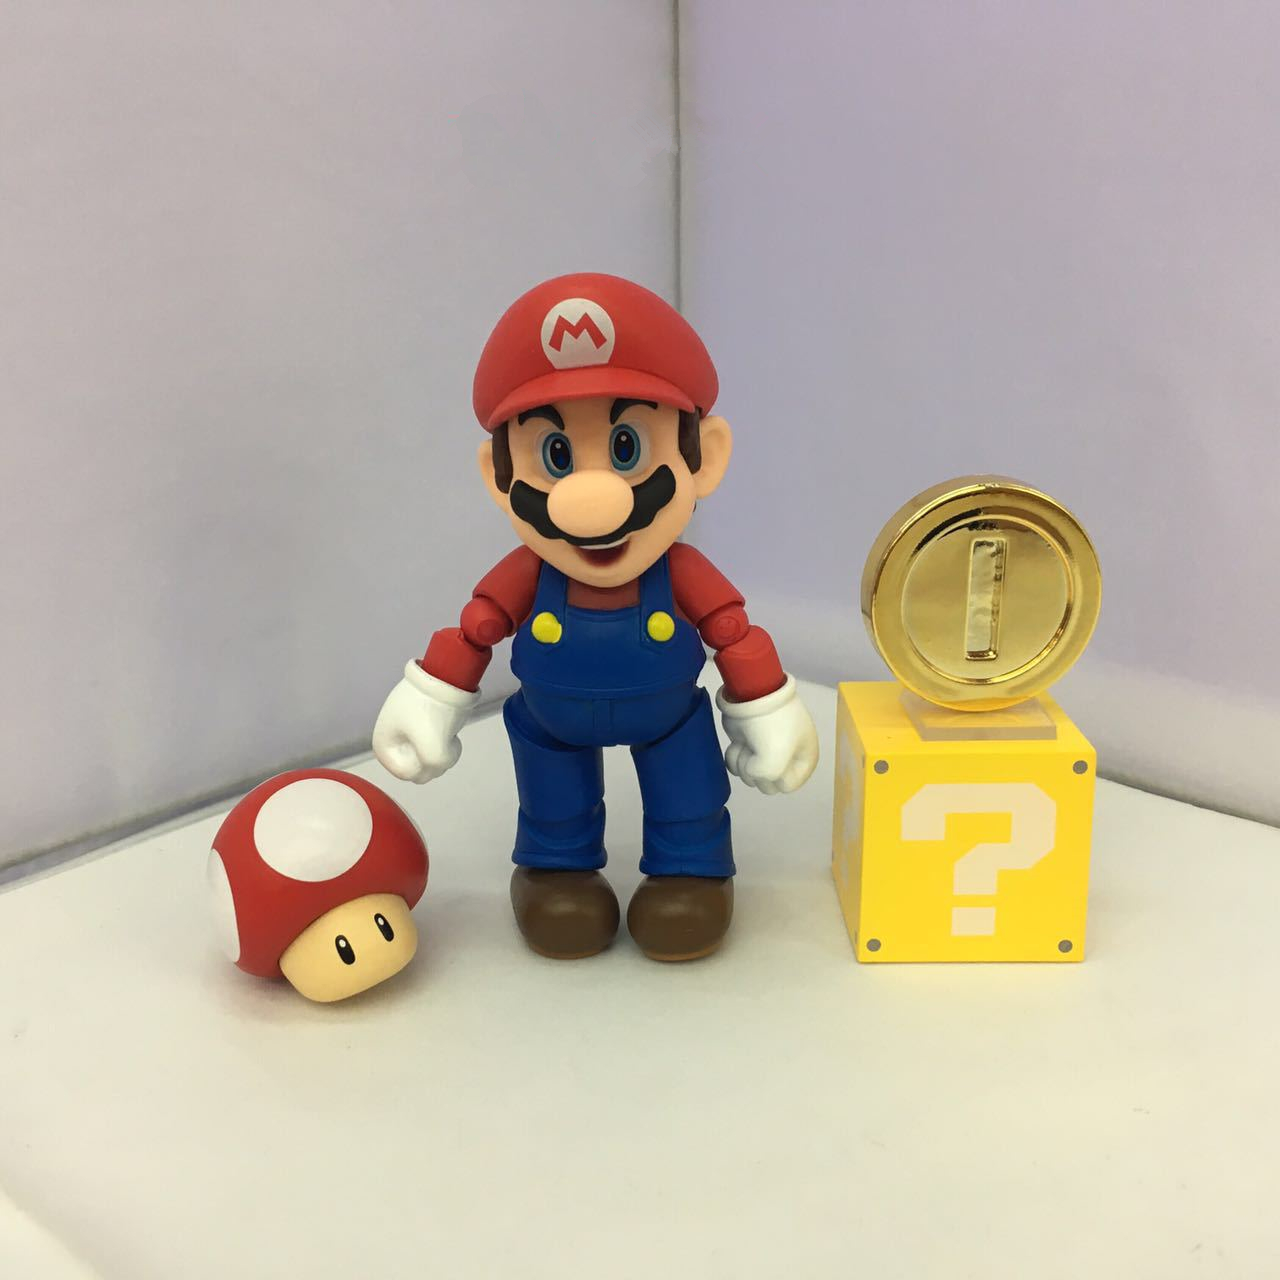 SHFiguarts Super Mario Bros Mario & Toad / Luigi & Koopa PVC Action Figure  Collectible Model Toy 11cm KT3857-in Action & Toy Figures from Toys &